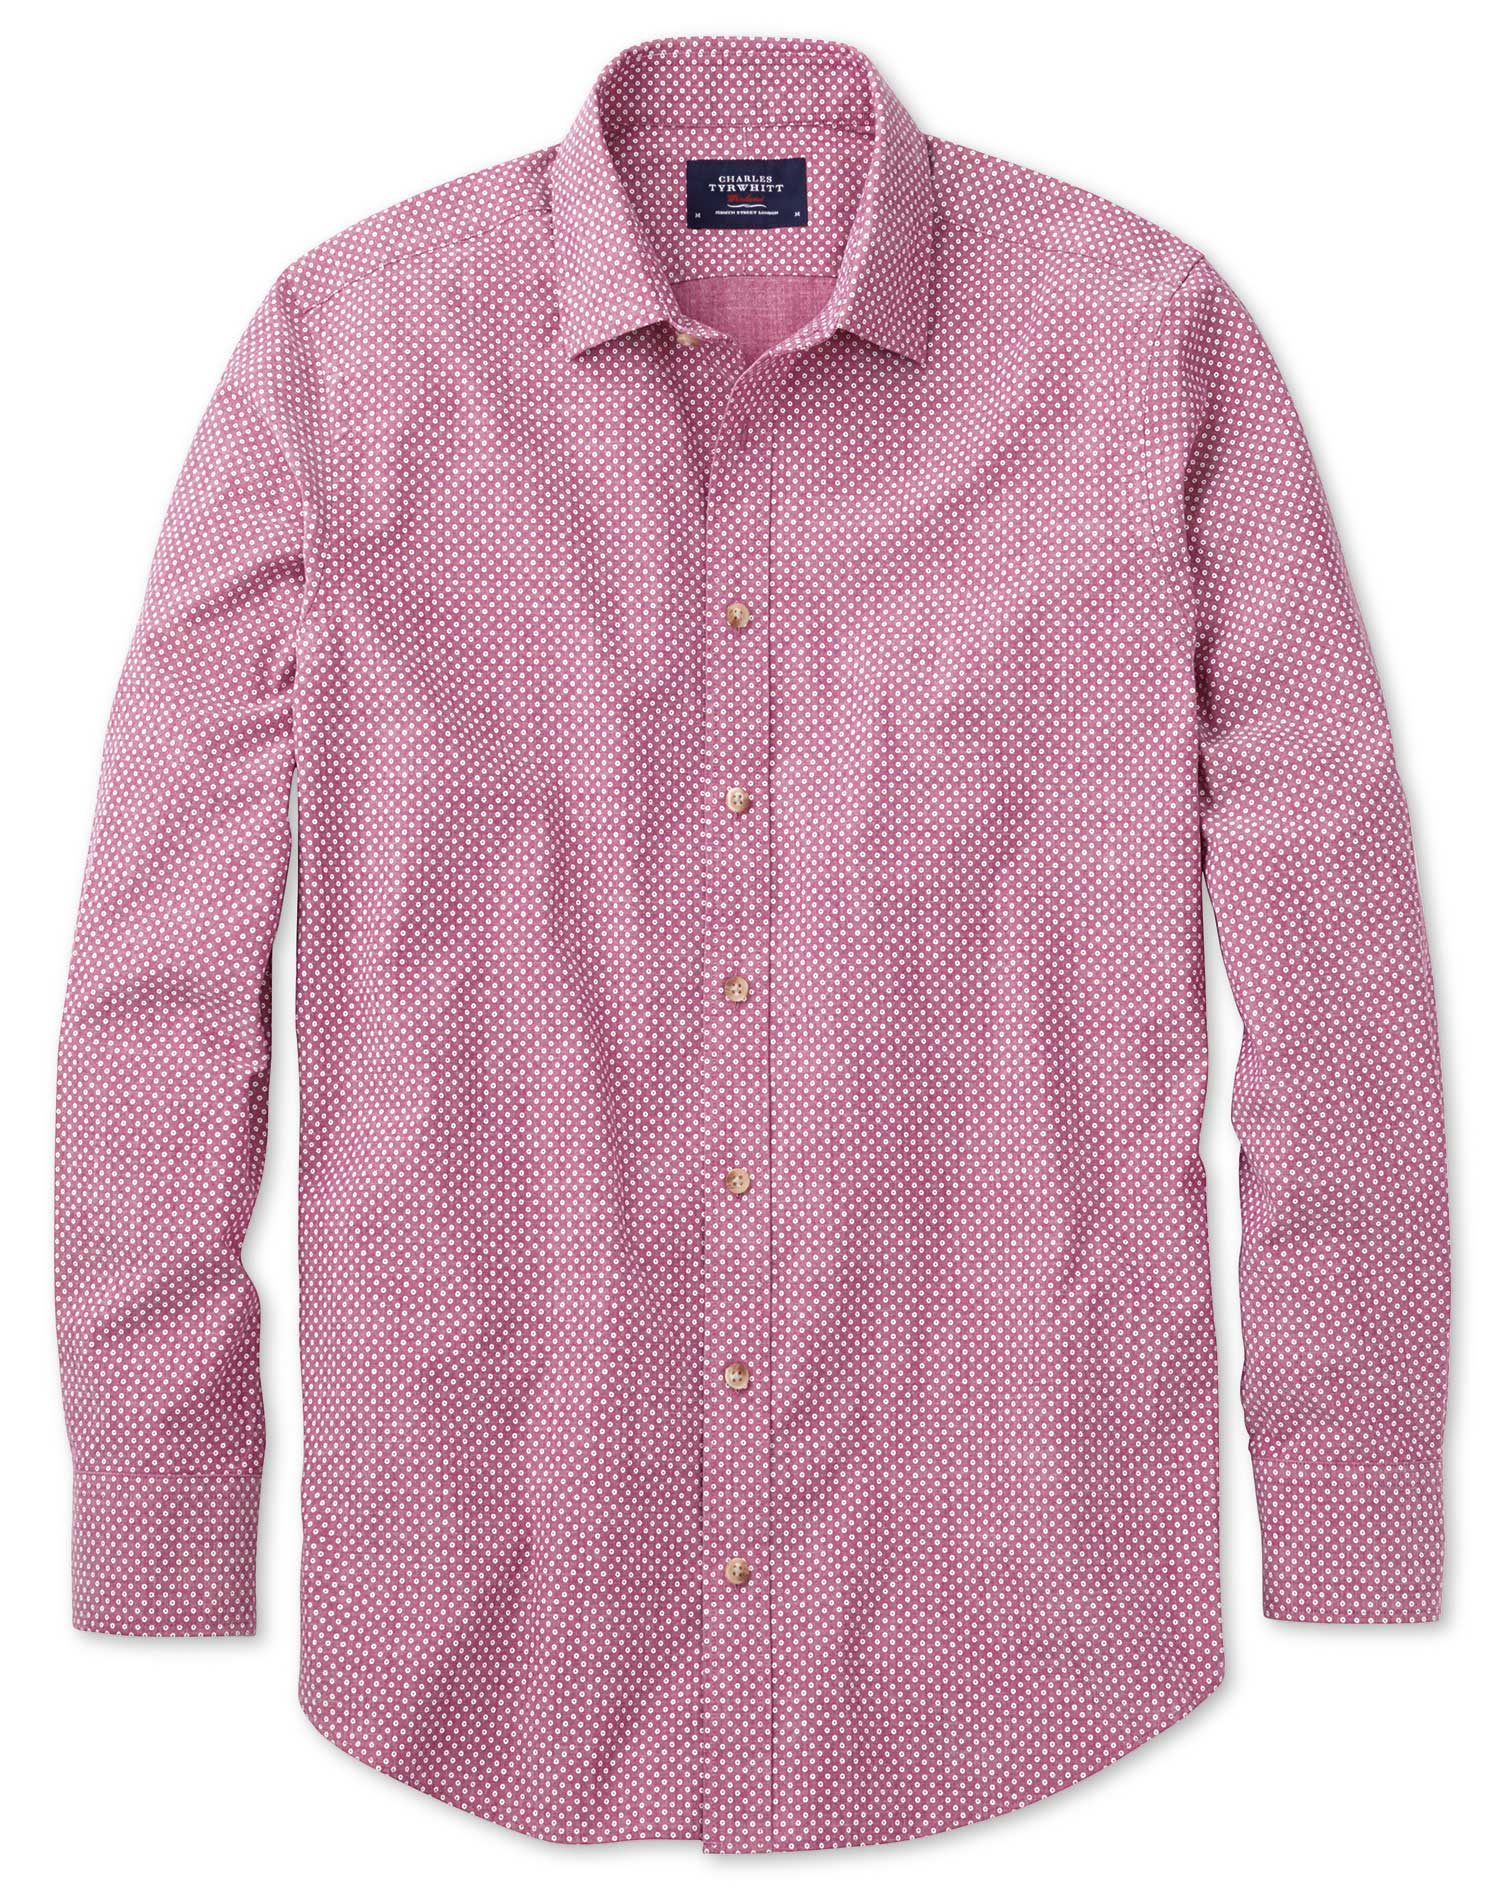 Extra Slim Fit Berry Red And White Spot Print Cotton Shirt